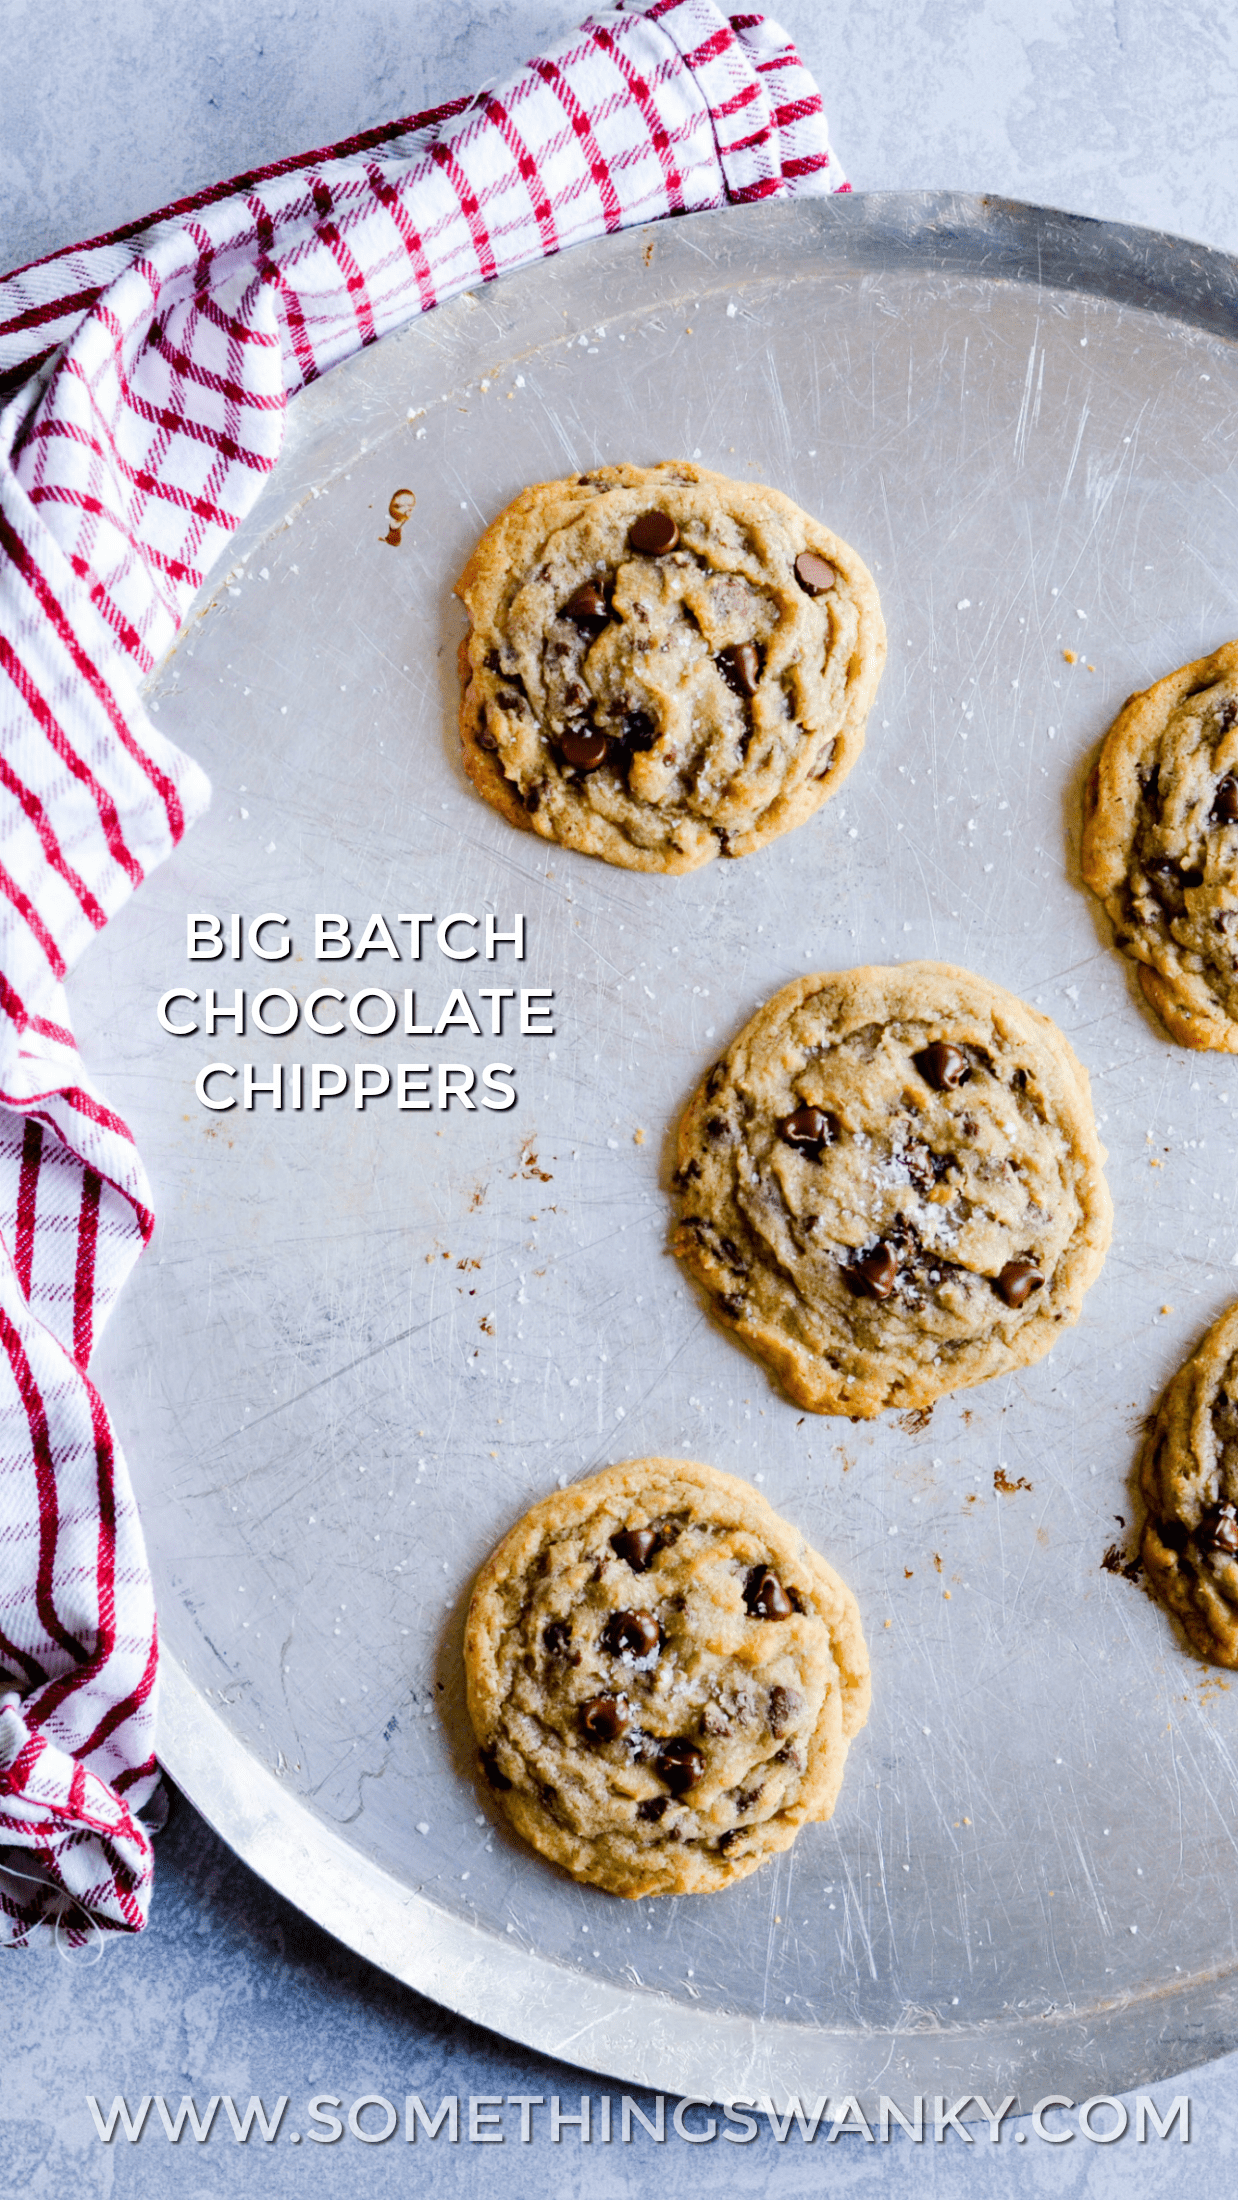 This Big Batch Chocolate Chippers recipe makes either 4 dozen BIG cookies (1/4 cup of dough per cookie) or 8 dozen standard size cookies (2 tbsp dough per cookie).